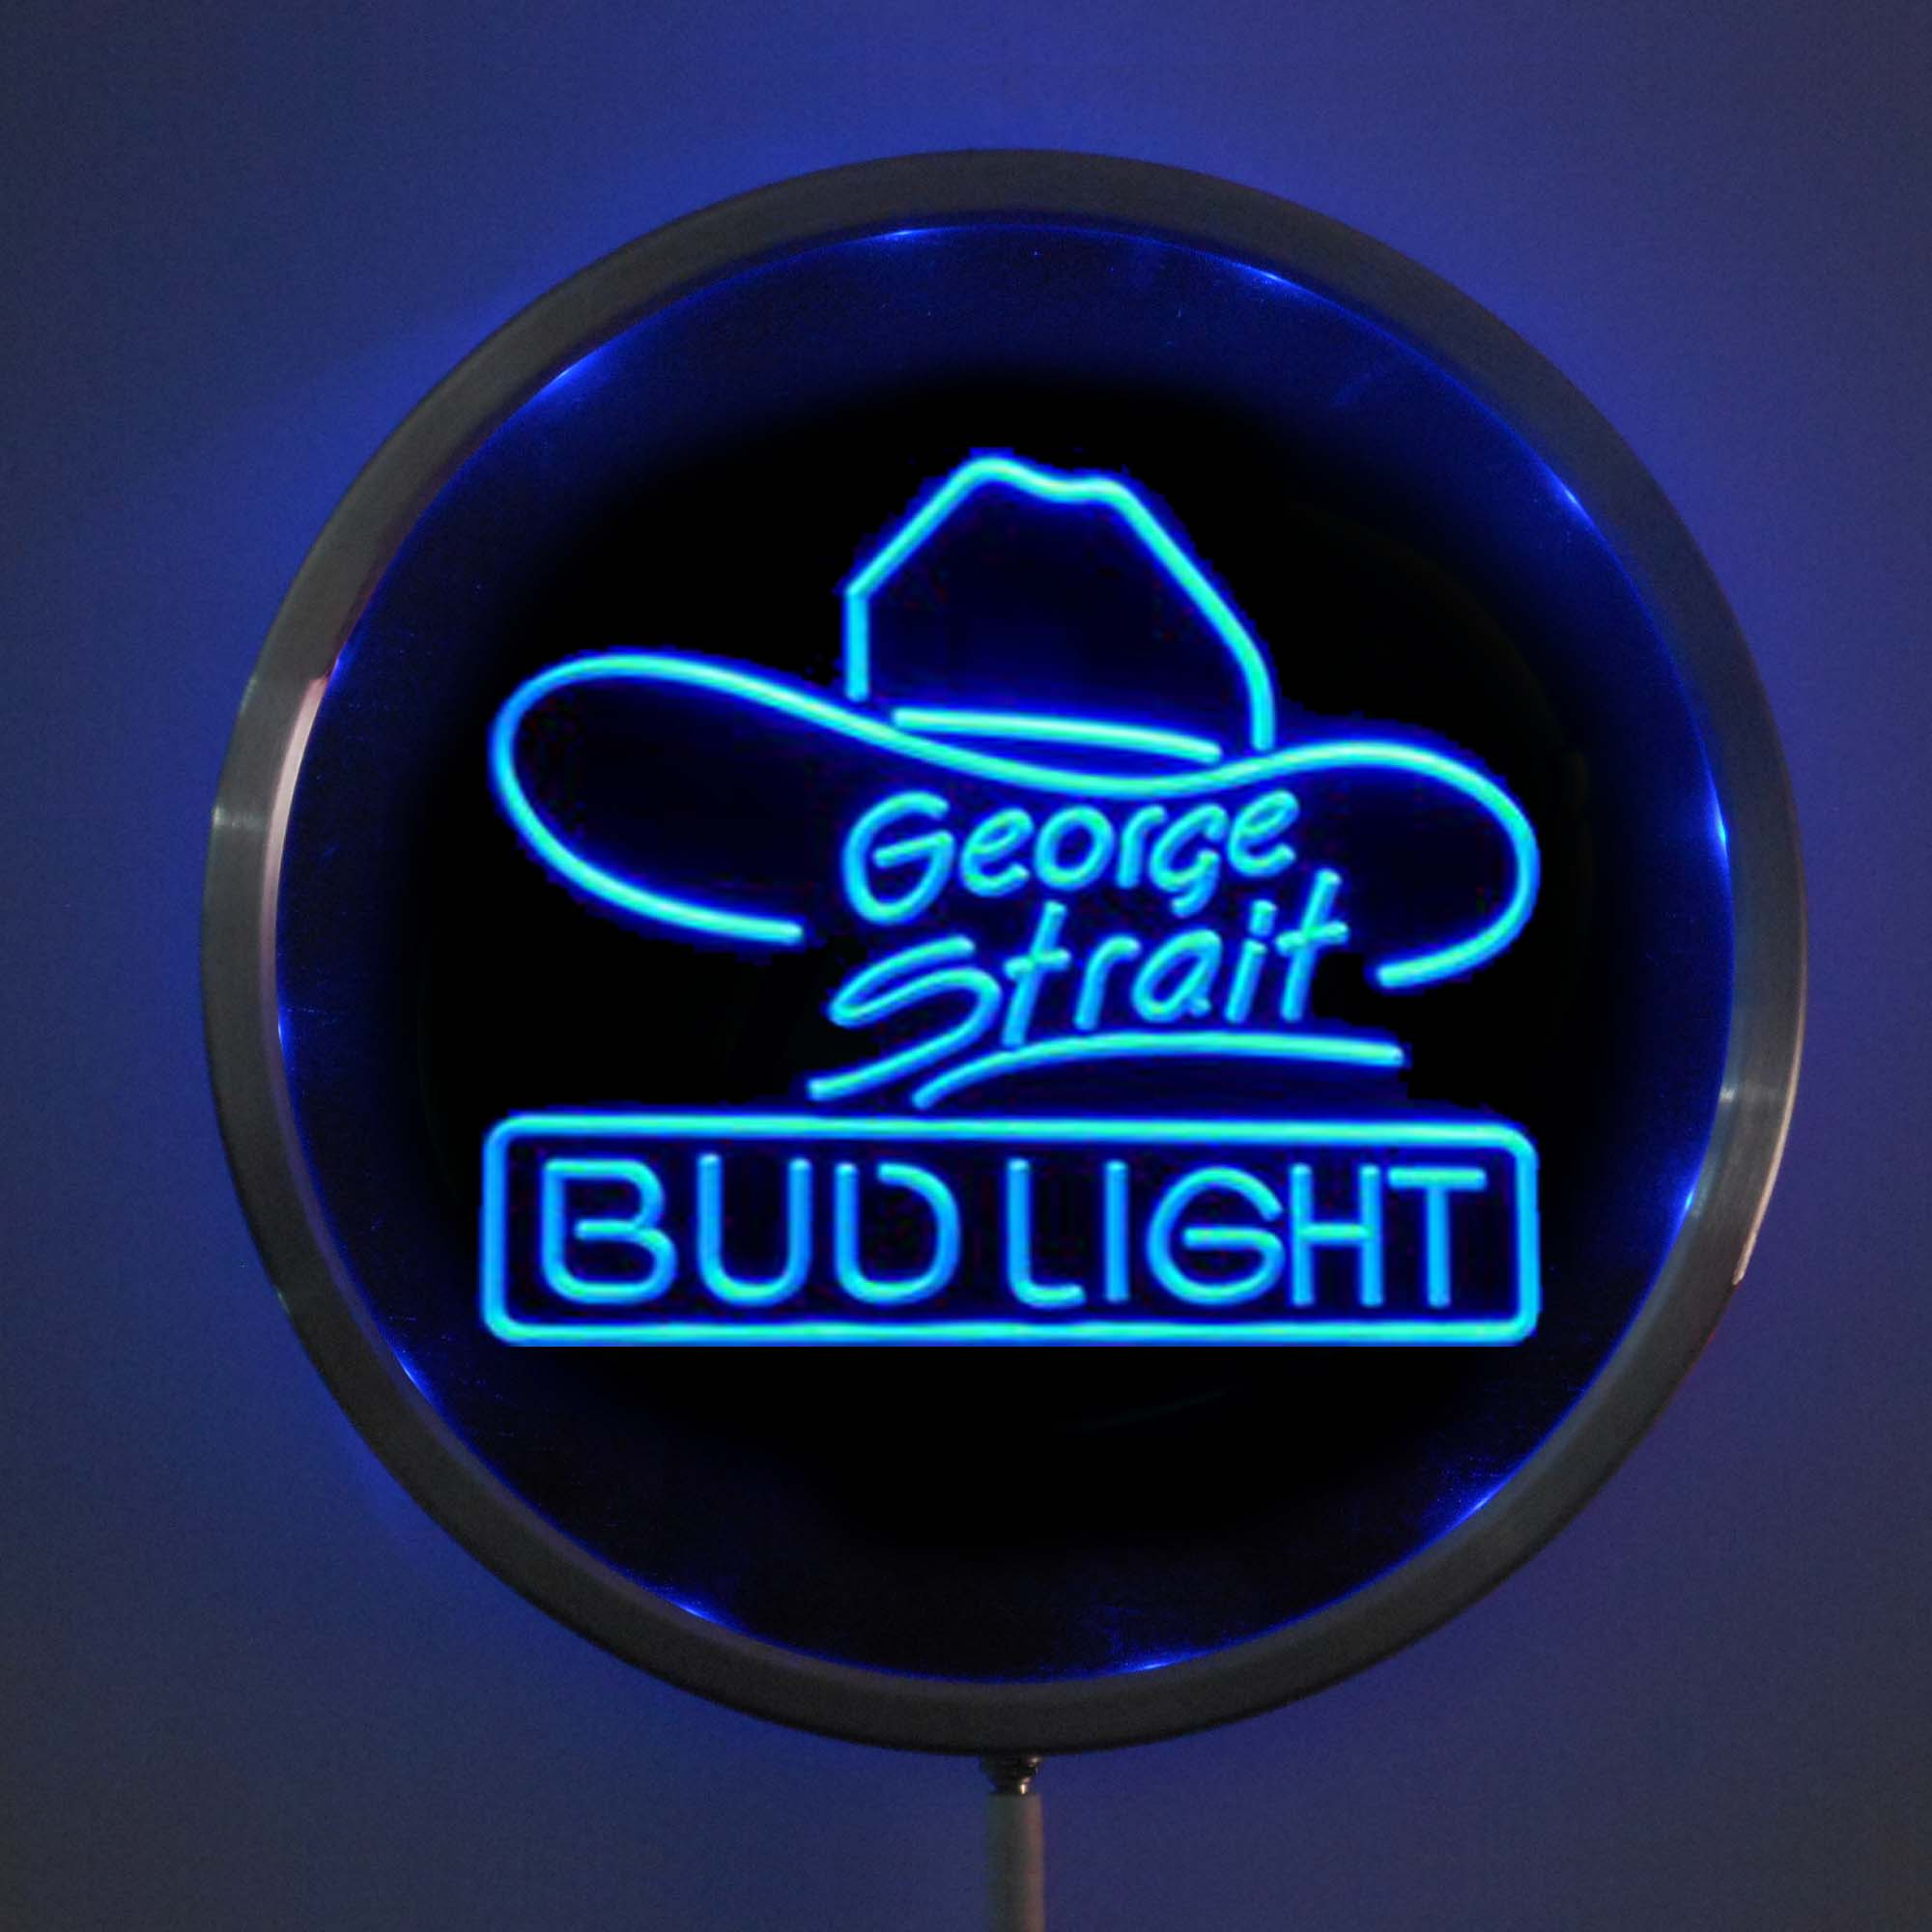 rs-a0116 Bud <font><b>Light</b></font> George Strait LED Neon Round Signs 25cm/ 10 Inch - Bar Sign with RGB Multi-Color Remote Wireless Control